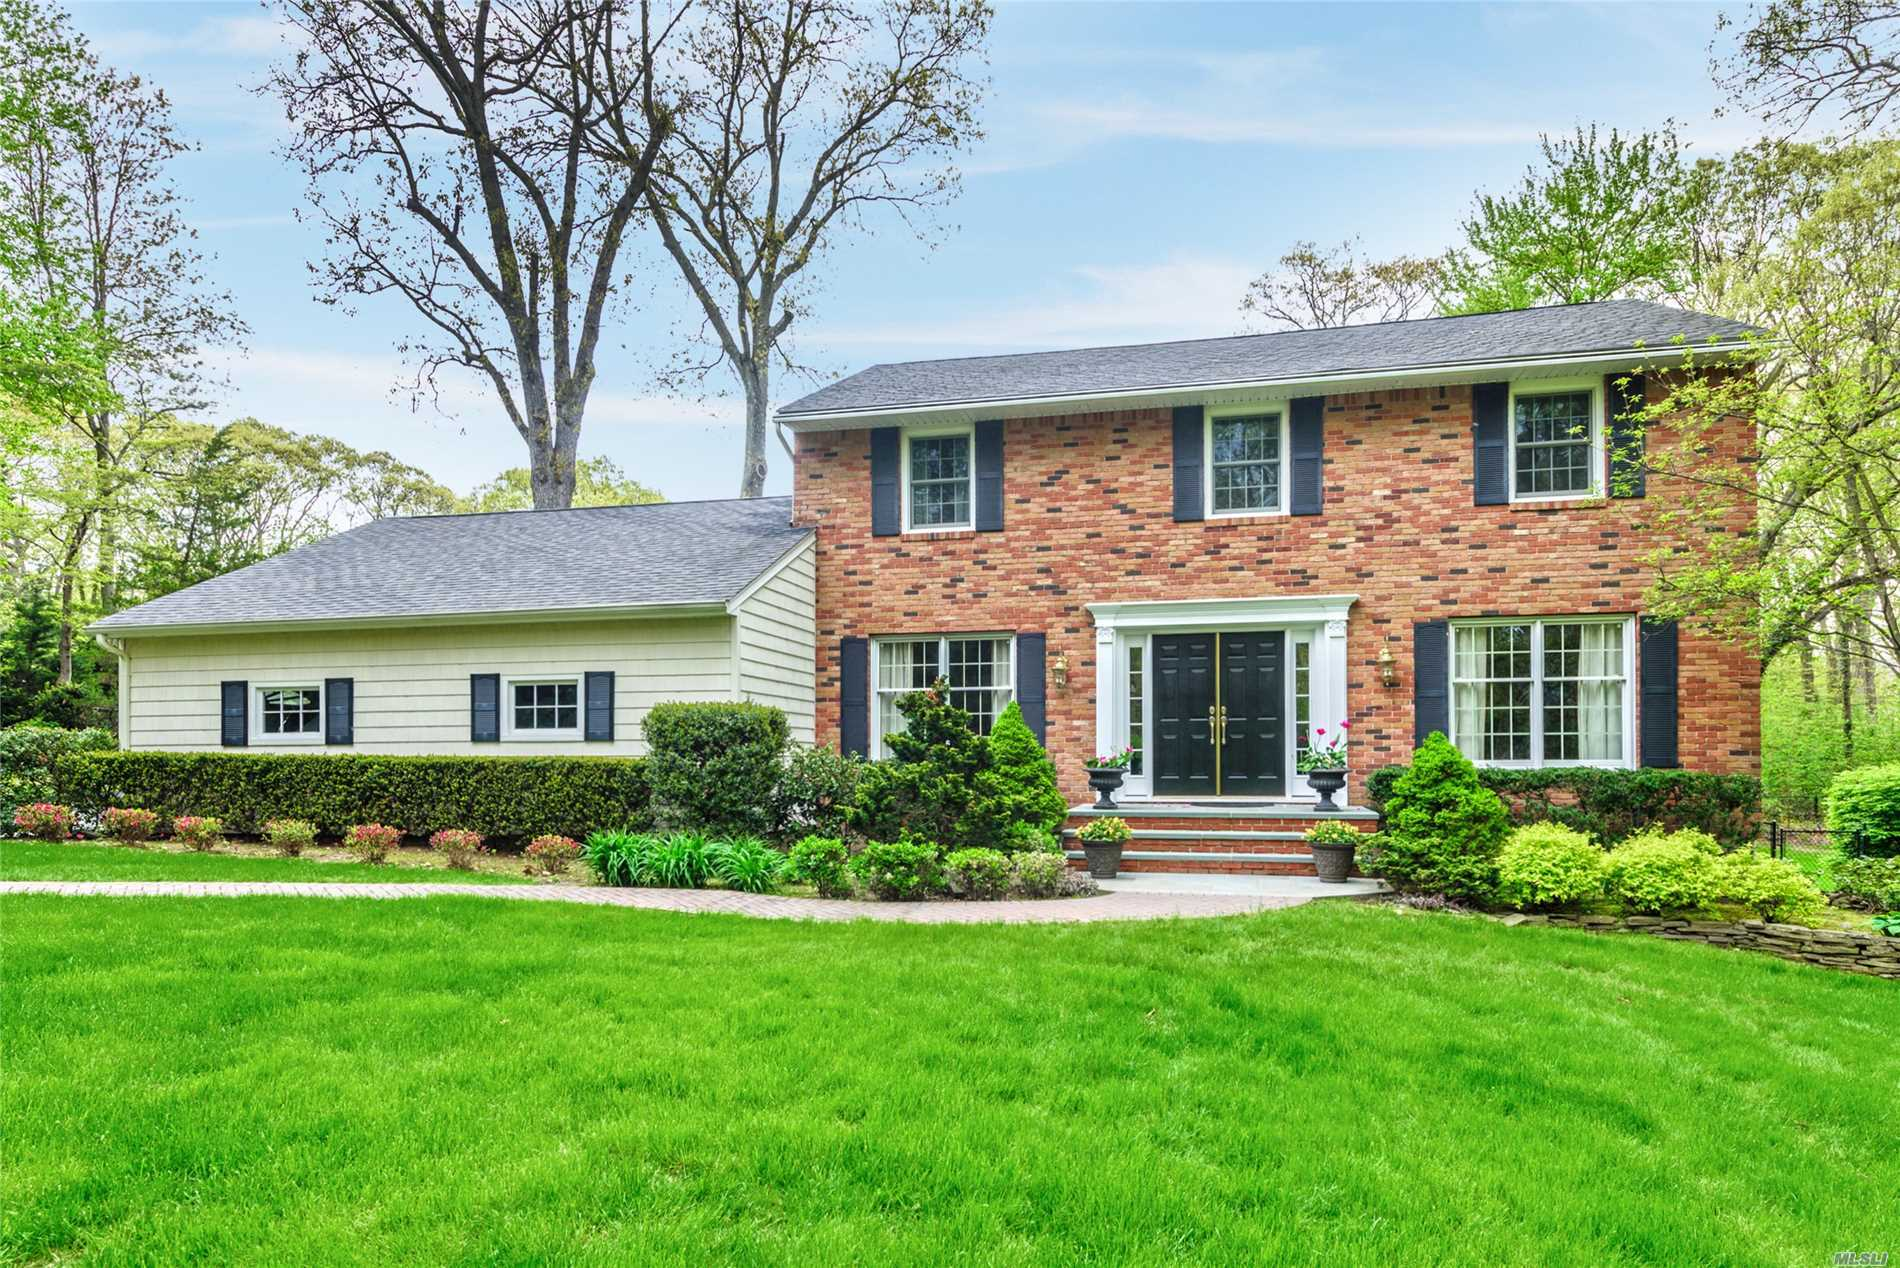 Classic 4 Br 2.5 Bth Center Hall Colonial On Lushly Landscaped One Acre Property. Tastefully Decorated and Updated With Custom Details & Moldings Throughout. Large Formal Living Room With French Glass Doors. Inviting Family Room W/Fireplace. Beautiful Updated Eat In Kitchen & Breakfast Area. Formal Dining Rm W/Wainscoting. Main Fl Laundry Rm. Master Br W/Updated Bth. Stunning Entertaining Backyard W/Heated Saltwater In Ground Pool & Pavered Patio Areas. Gas Heat. Absolutely Diamond Condition!